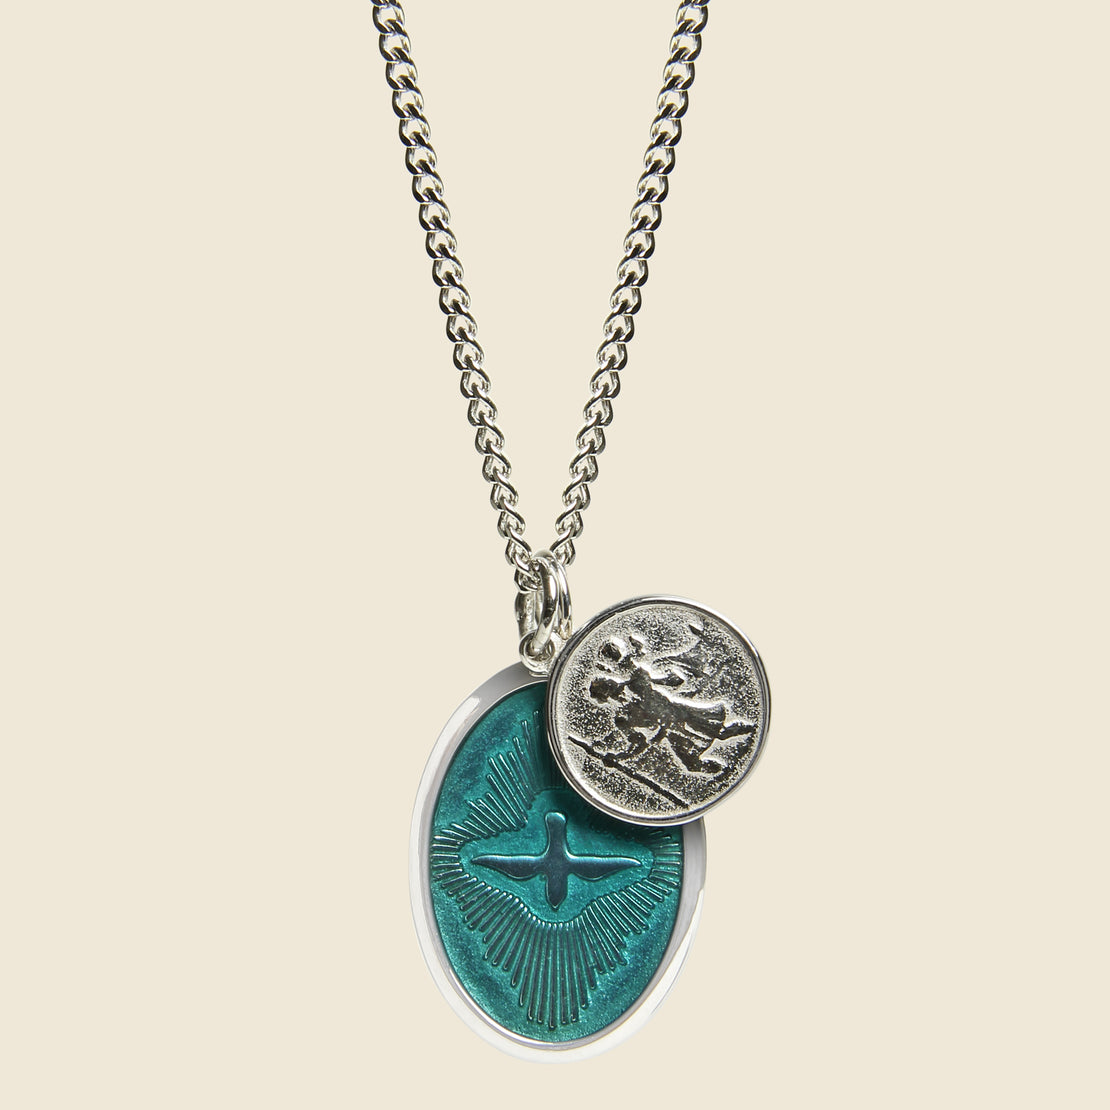 Miansai Dove Pendant Necklace - Enamel/Sterling Silver